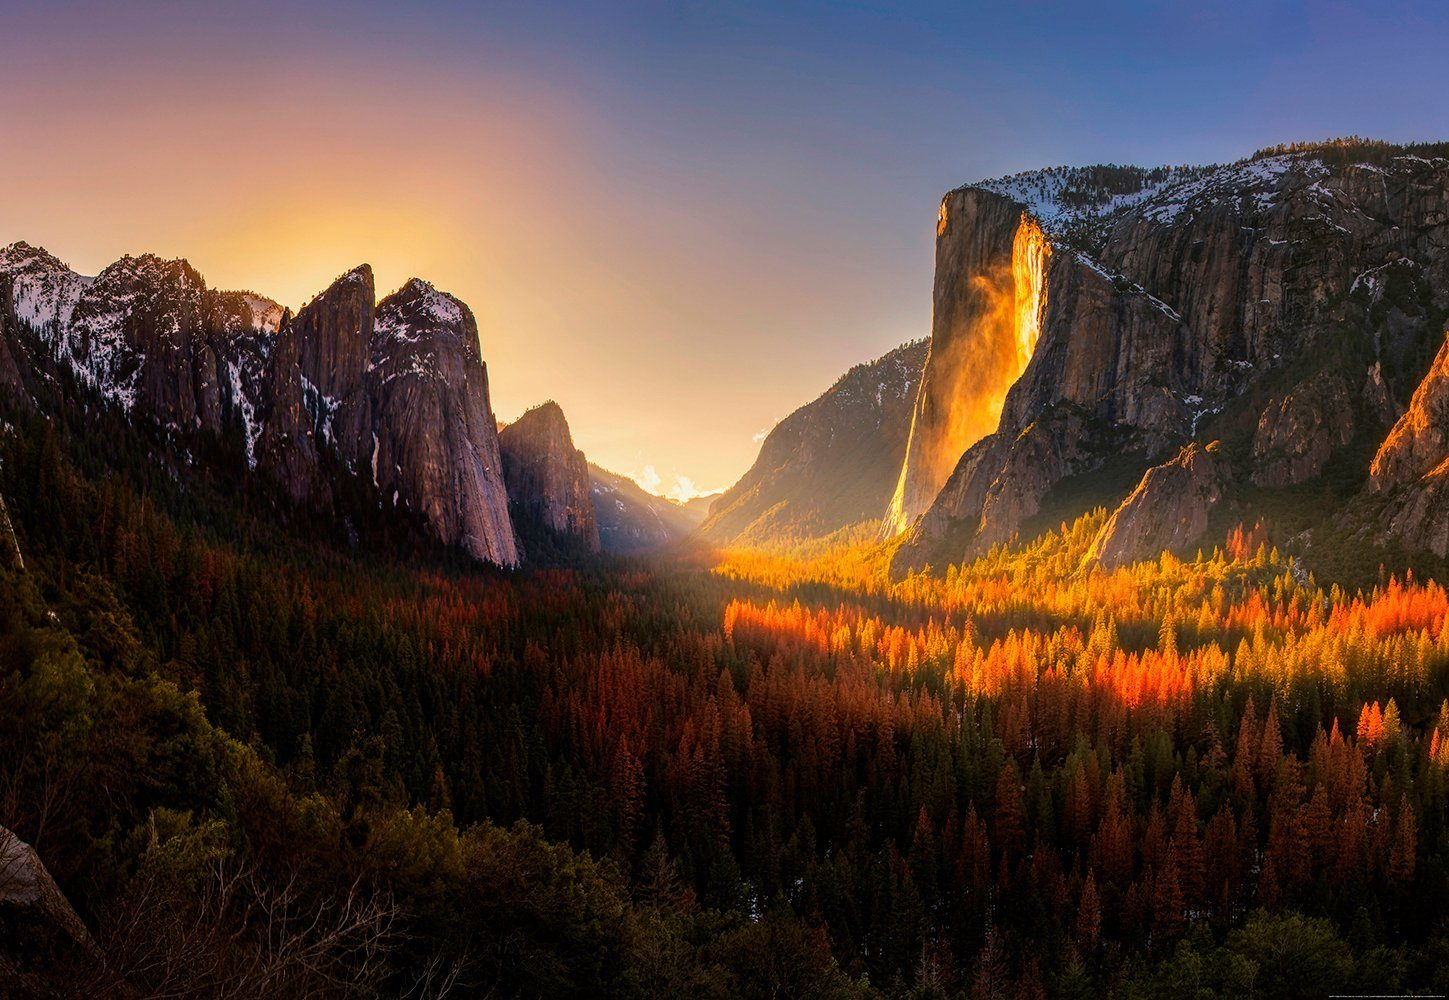 IDEALDECOR Fototapete »Yosemite Nationalpark USA«, Vlies, 4 Bahnen, 368 x 254 cm